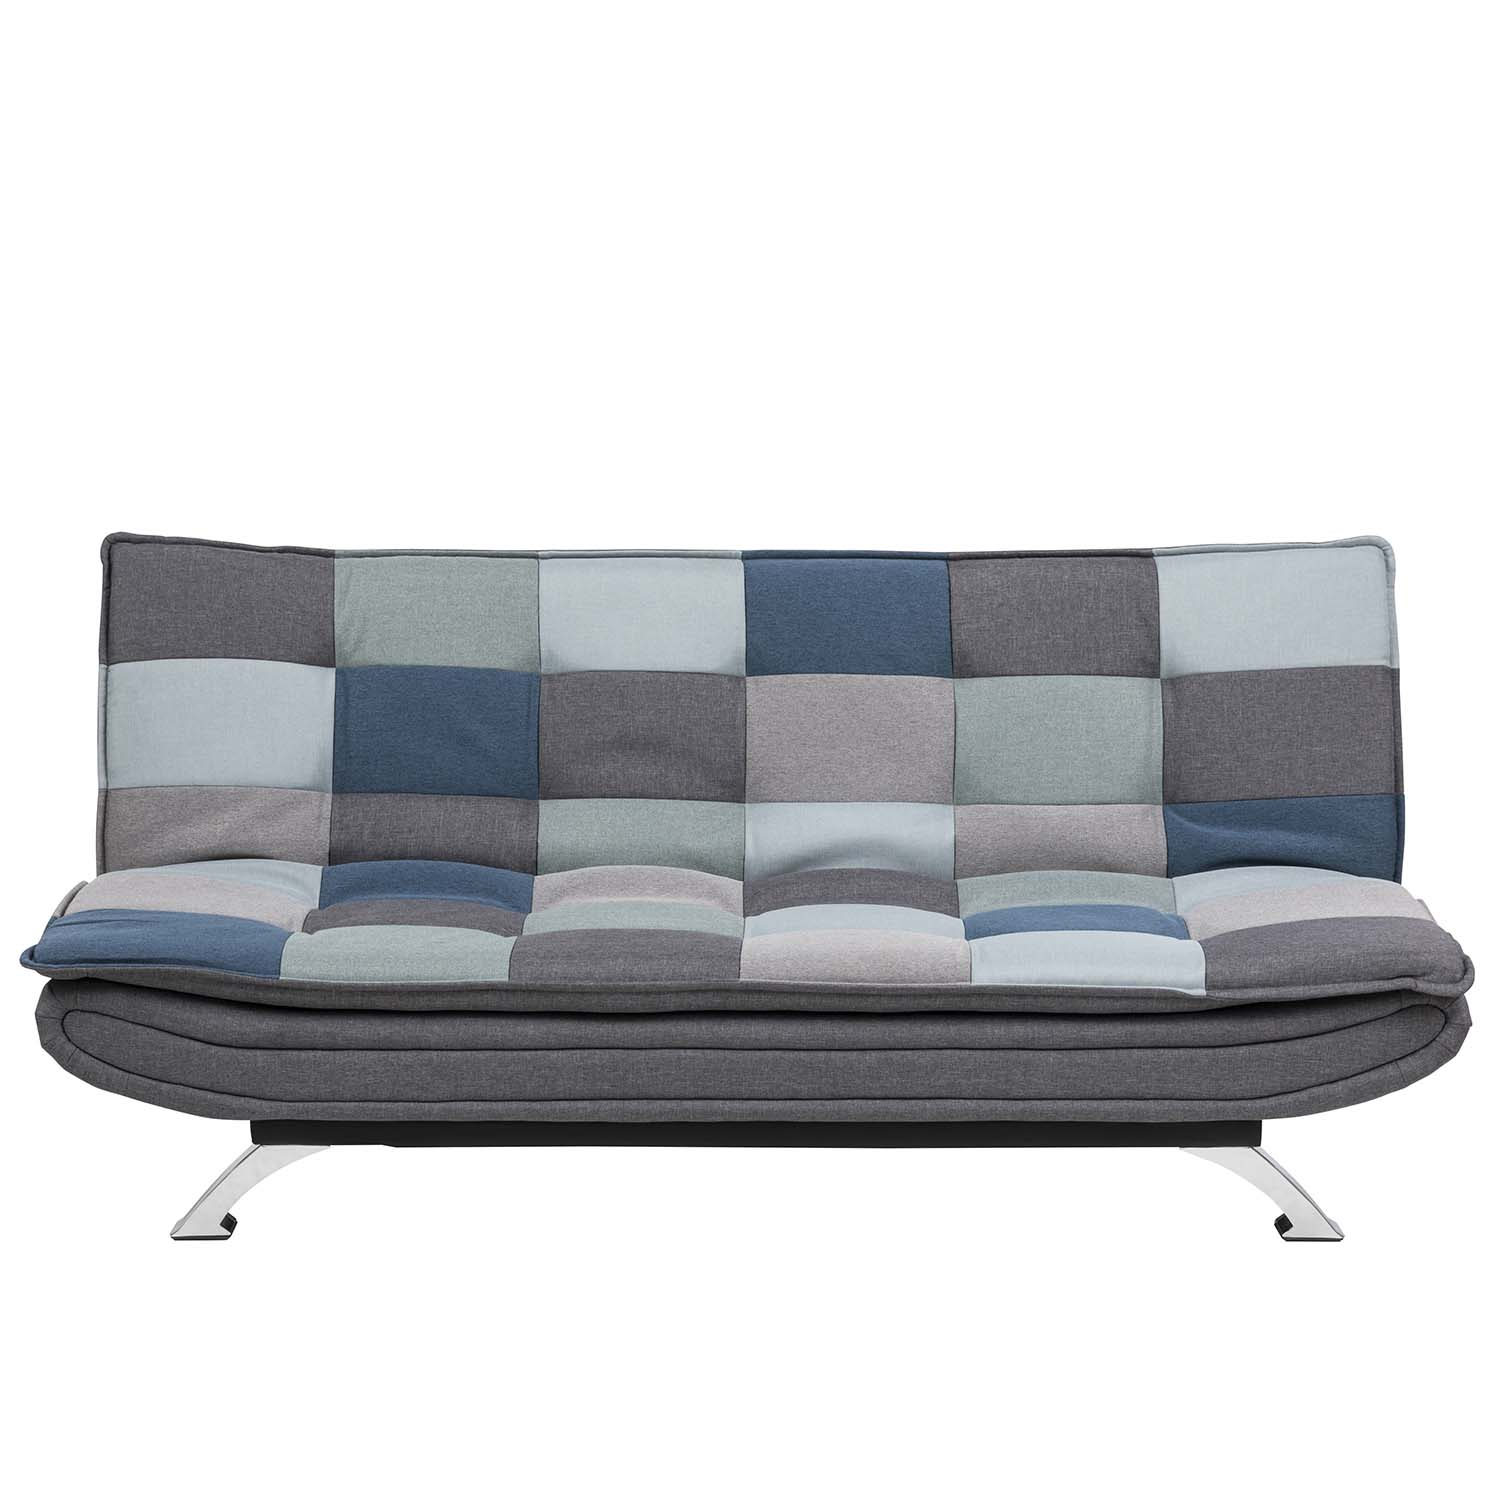 ACT NORDIC Faith sovesofa - multifarvet polyester og krom metal thumbnail